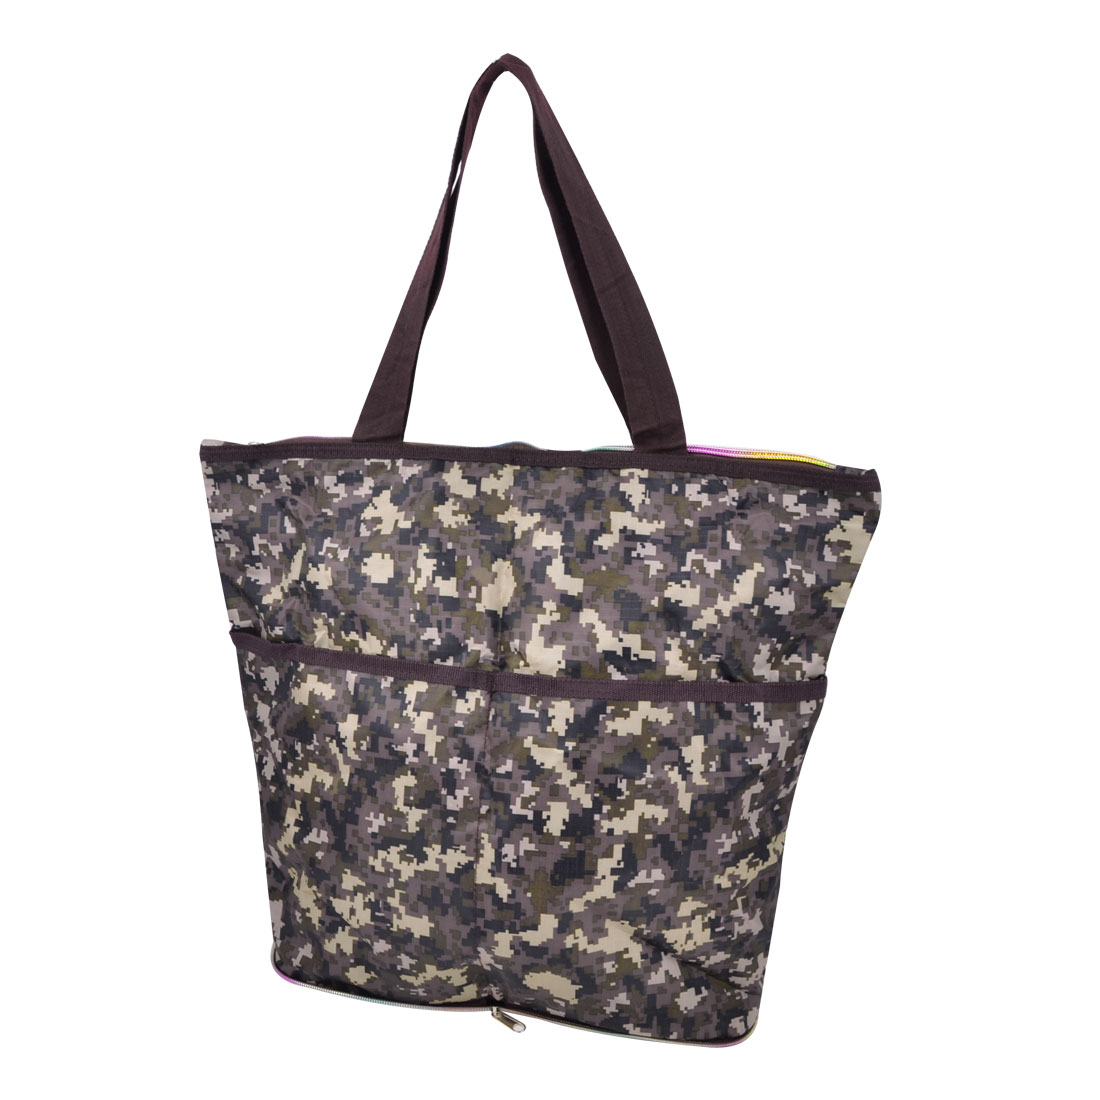 Traveling Household Foldable Camouflage Pattern Zipper Closure Clothes Storage Shopping Bag Holder Pouch 41x24x19cm